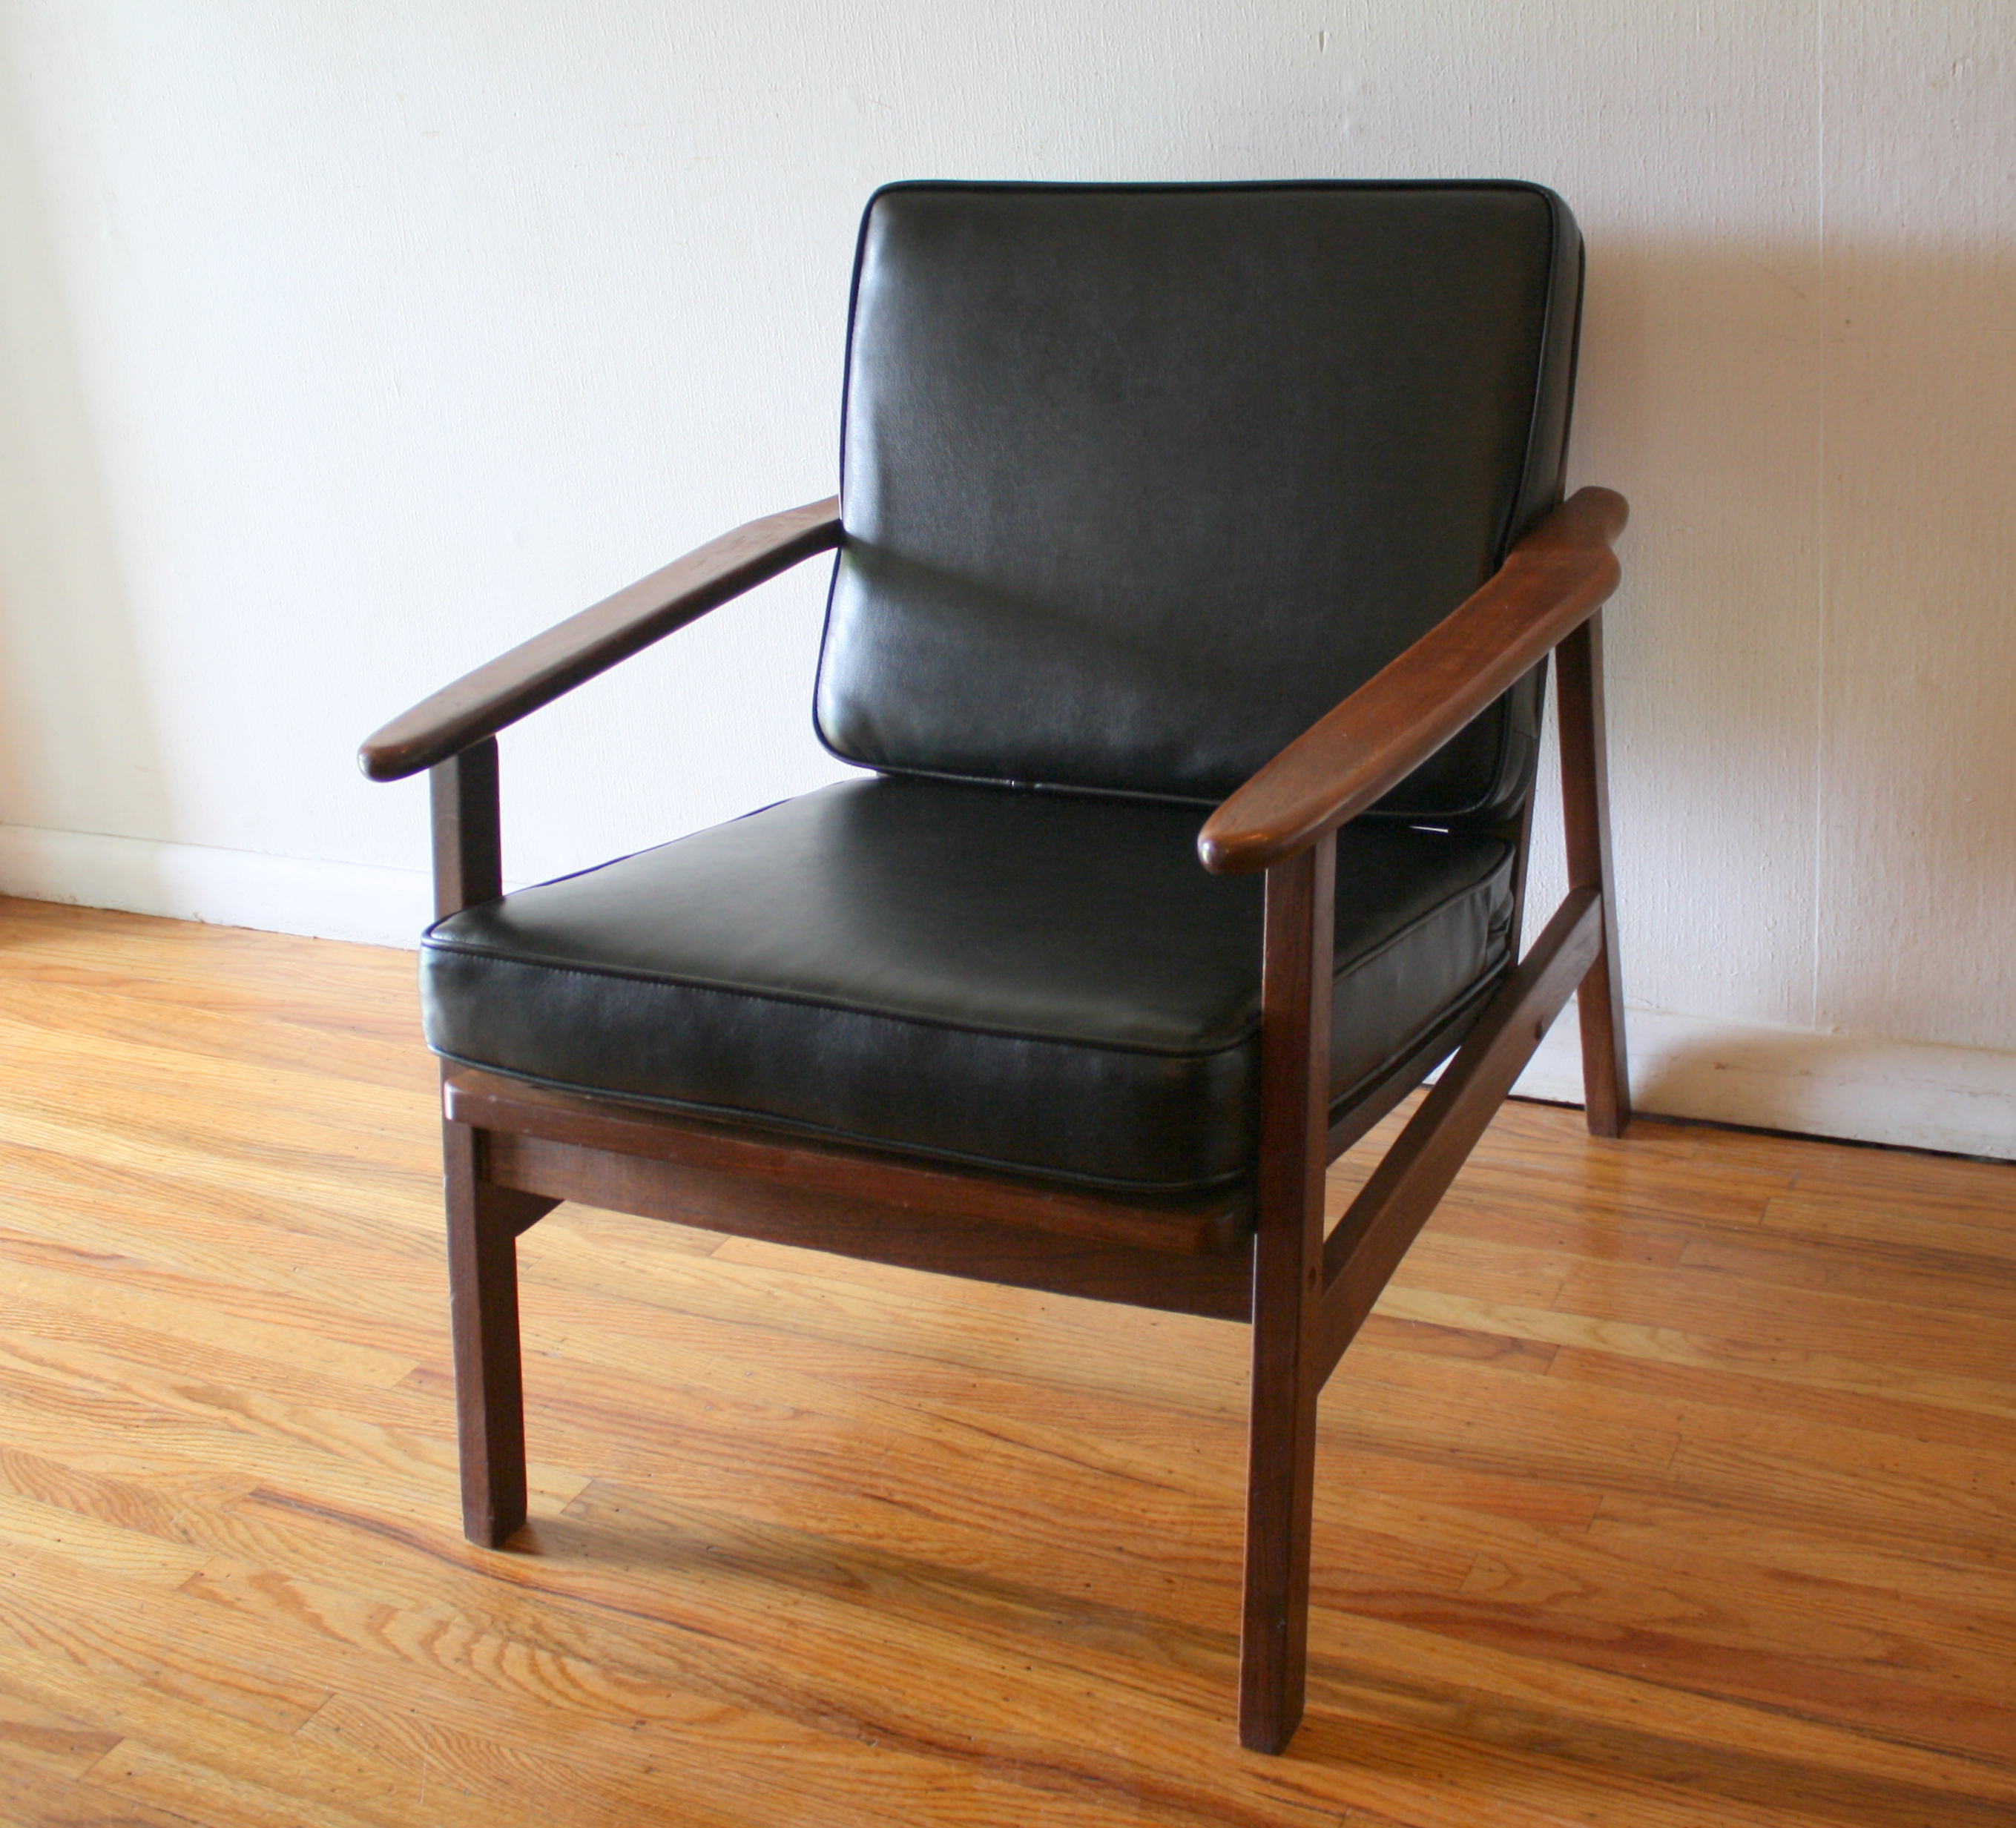 mcm arm chair black naugahyde 1.JPG